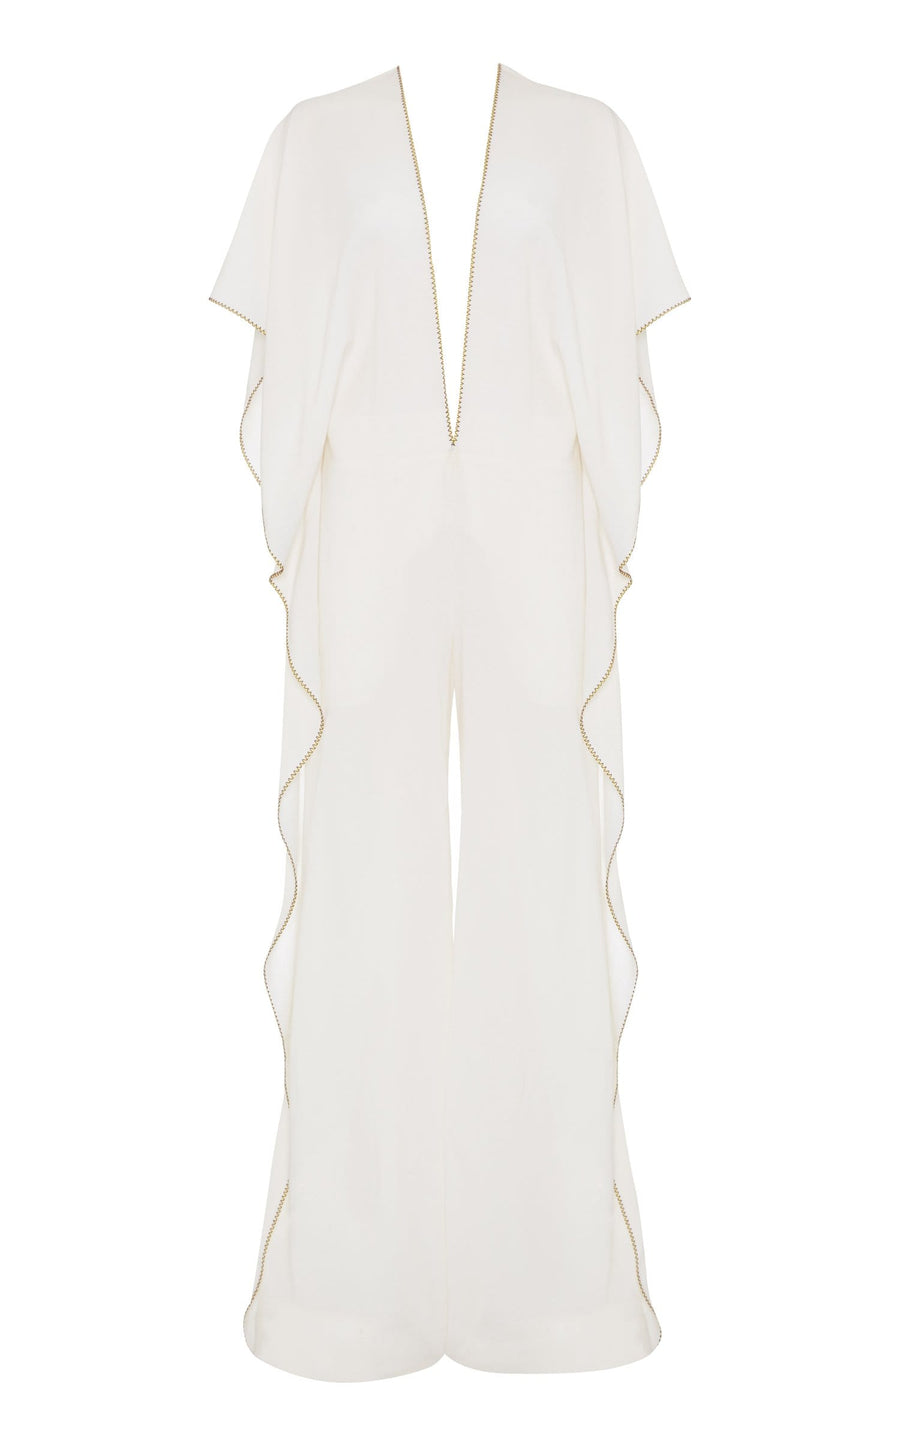 Auclair Jumpsuit In White from Roland Mouret